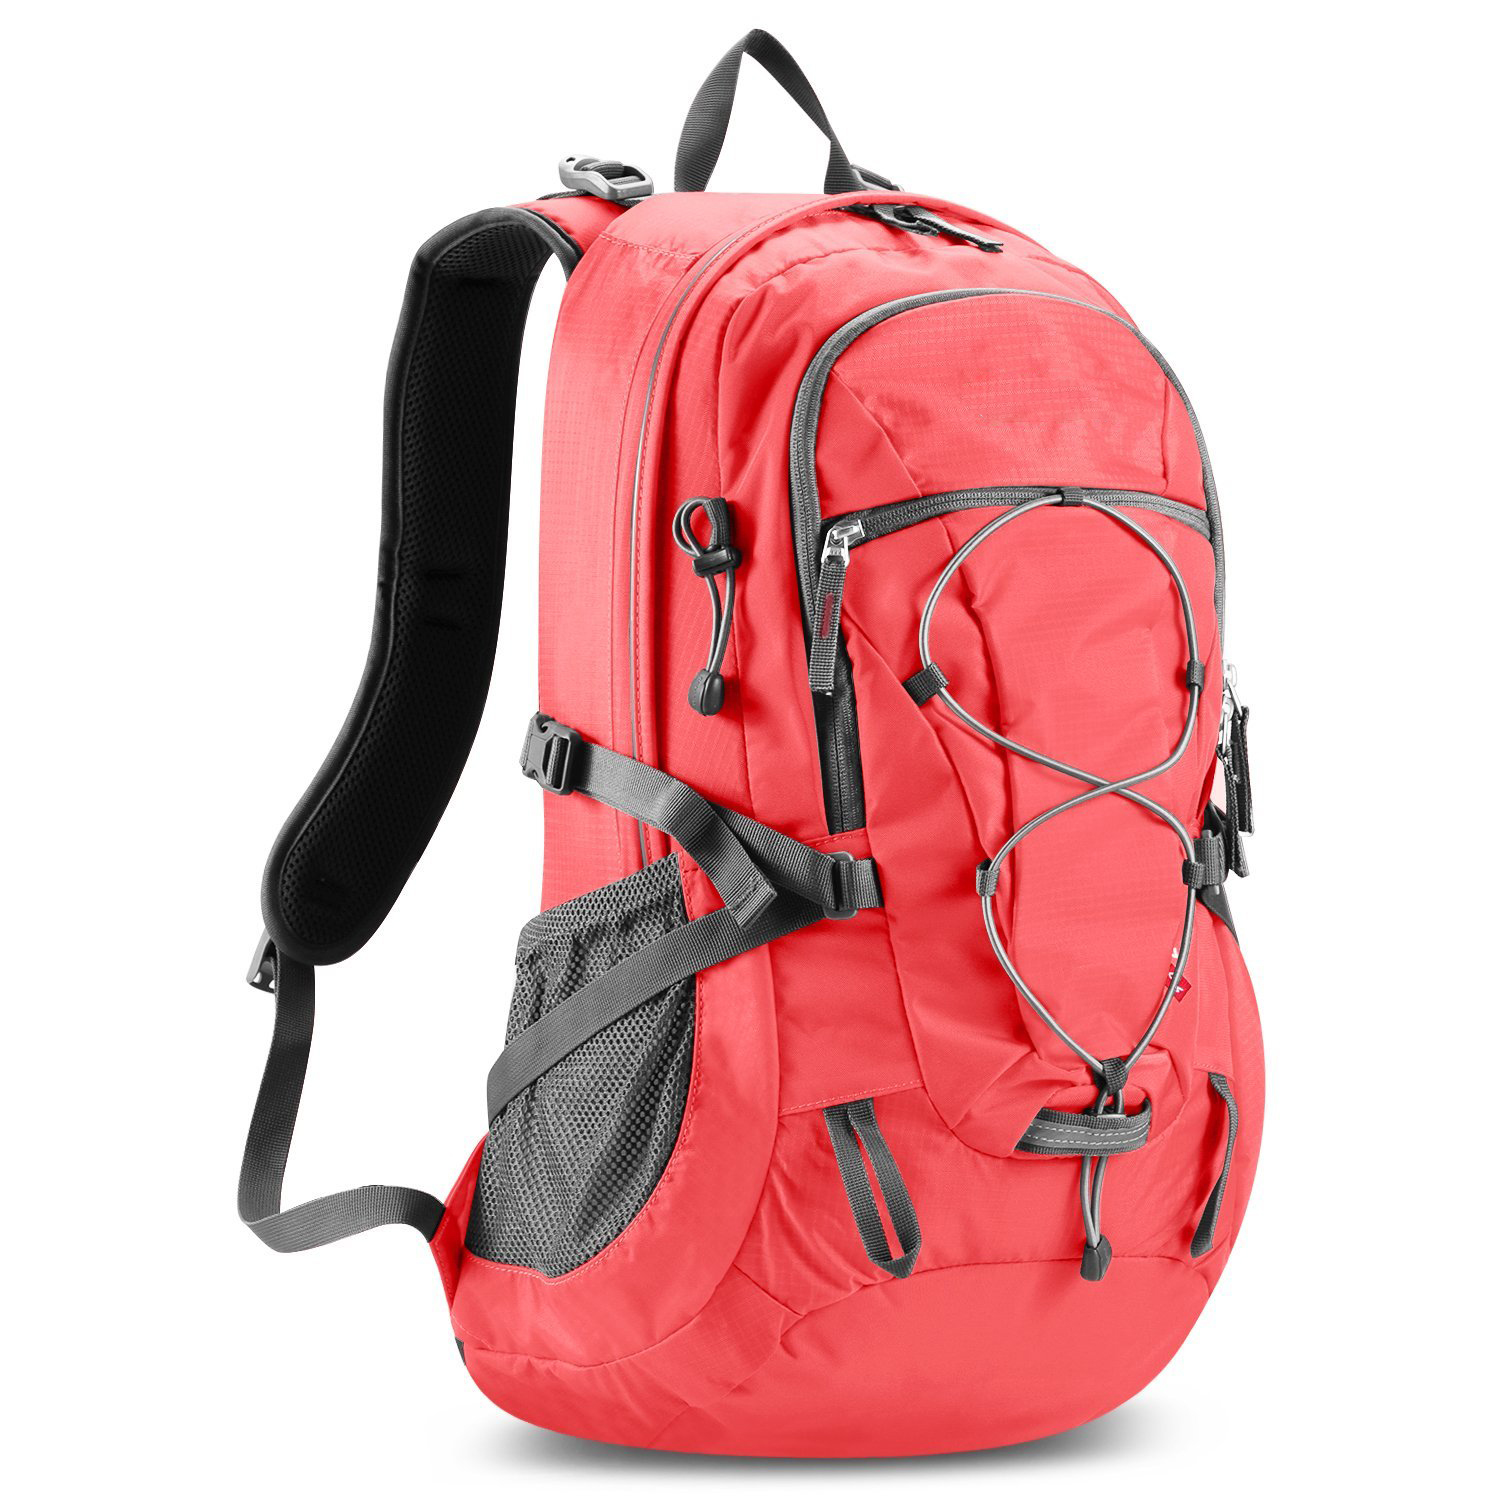 Outdoor Sports Hiking Camping Bag Trekking Daypack Waterproof Outside Backpack